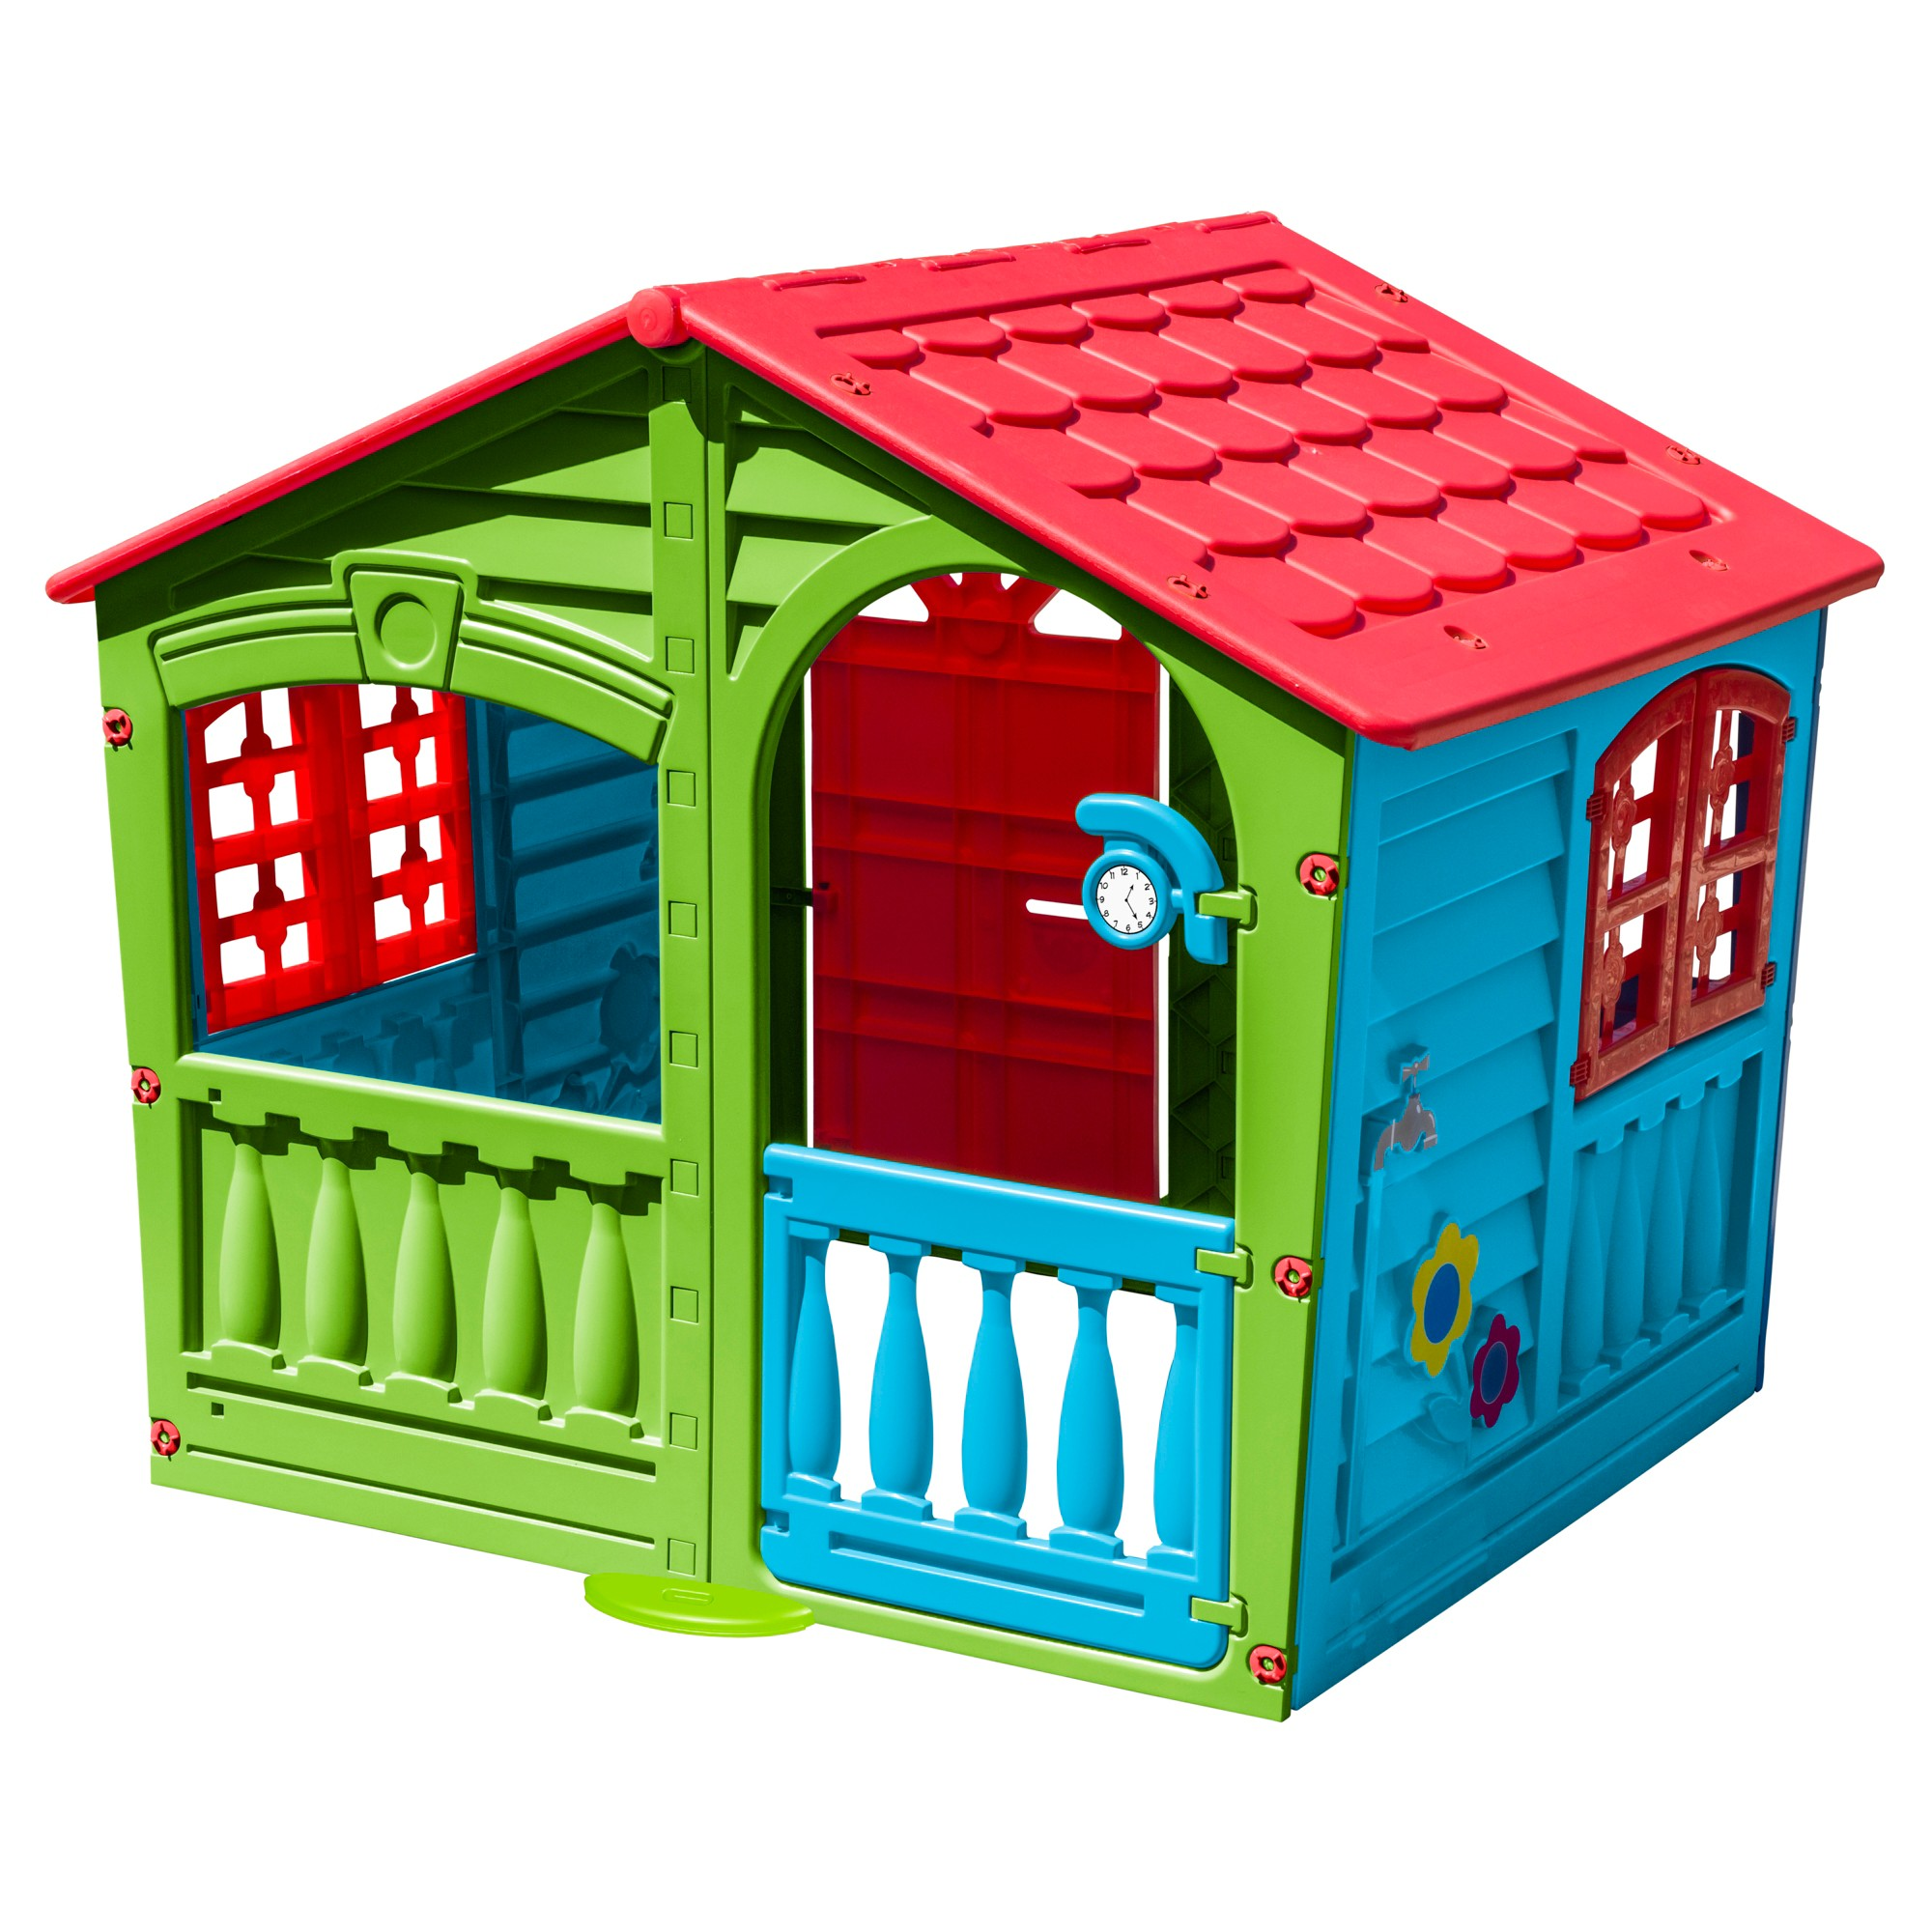 PalPlay House of Fun Playhouse - Green/Red/Blue, Multi-Colored ...